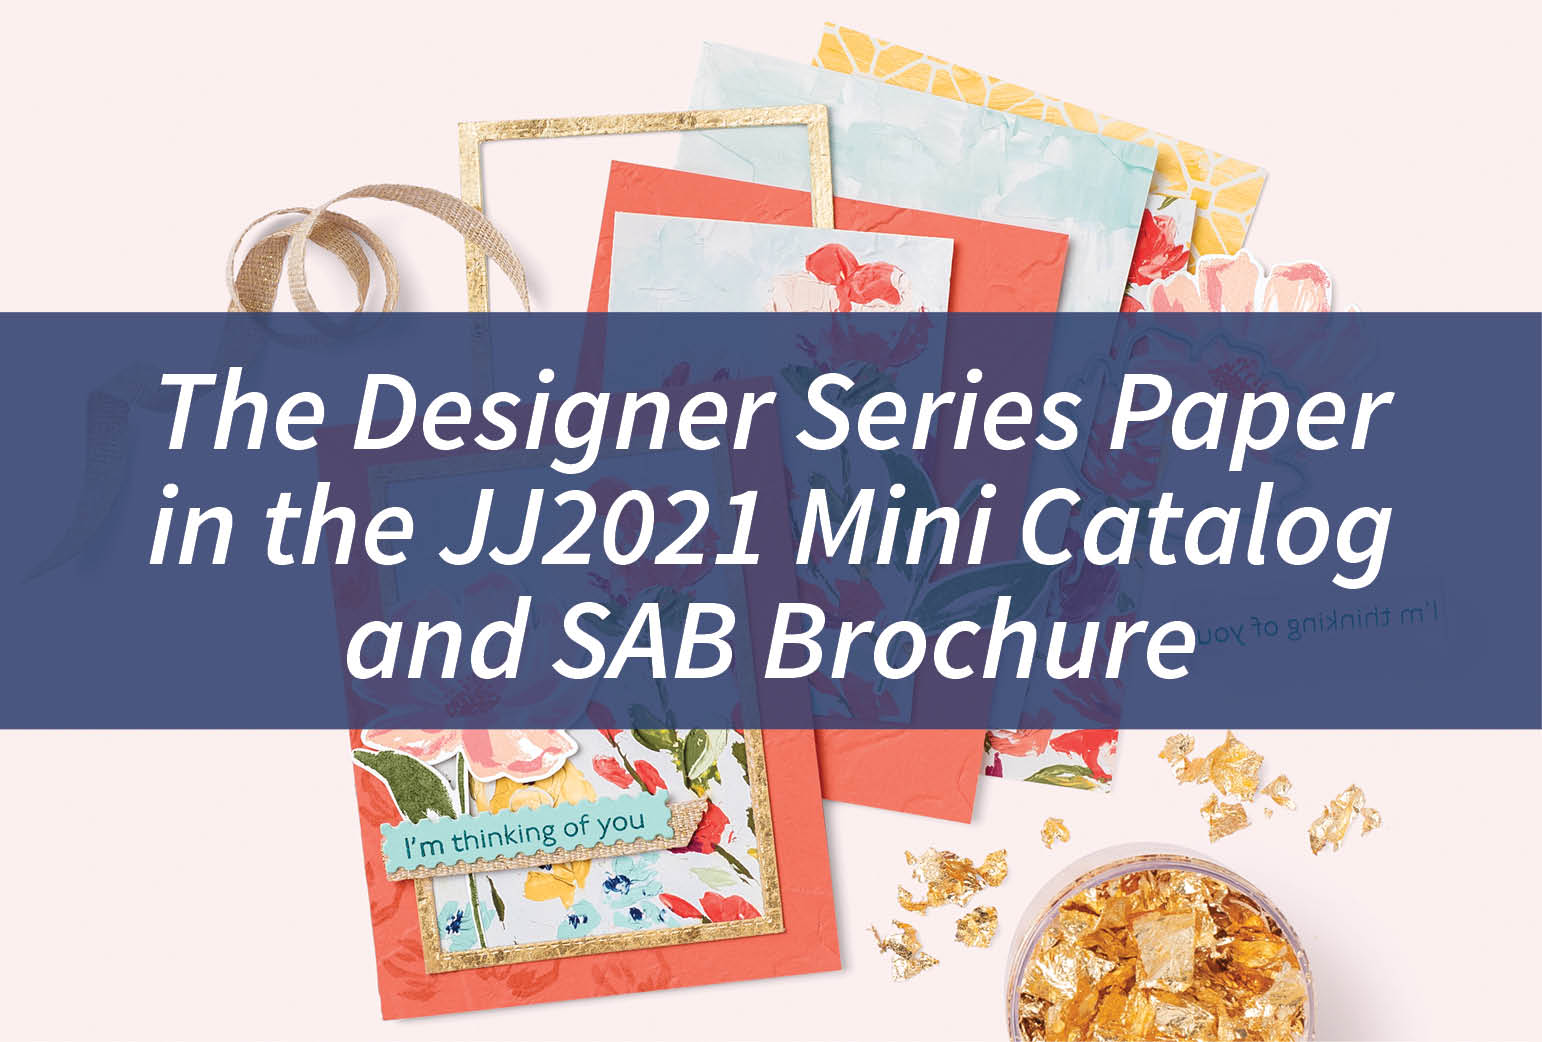 The Designer Series Paper in the JJ2021 Mini Catalog and SAB Brochure